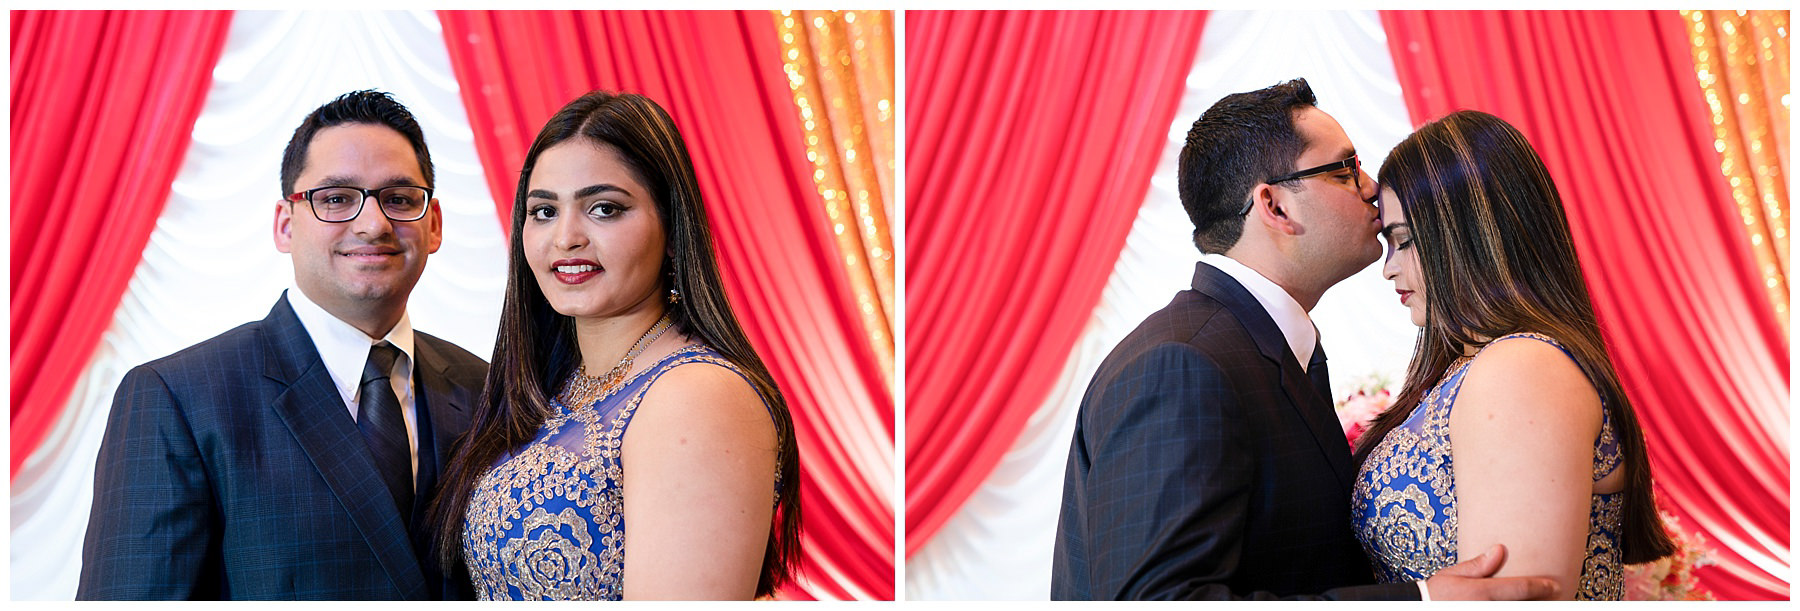 royal-alberts-palace-fords-nj-engagement-vidushi-ankush-9.jpg